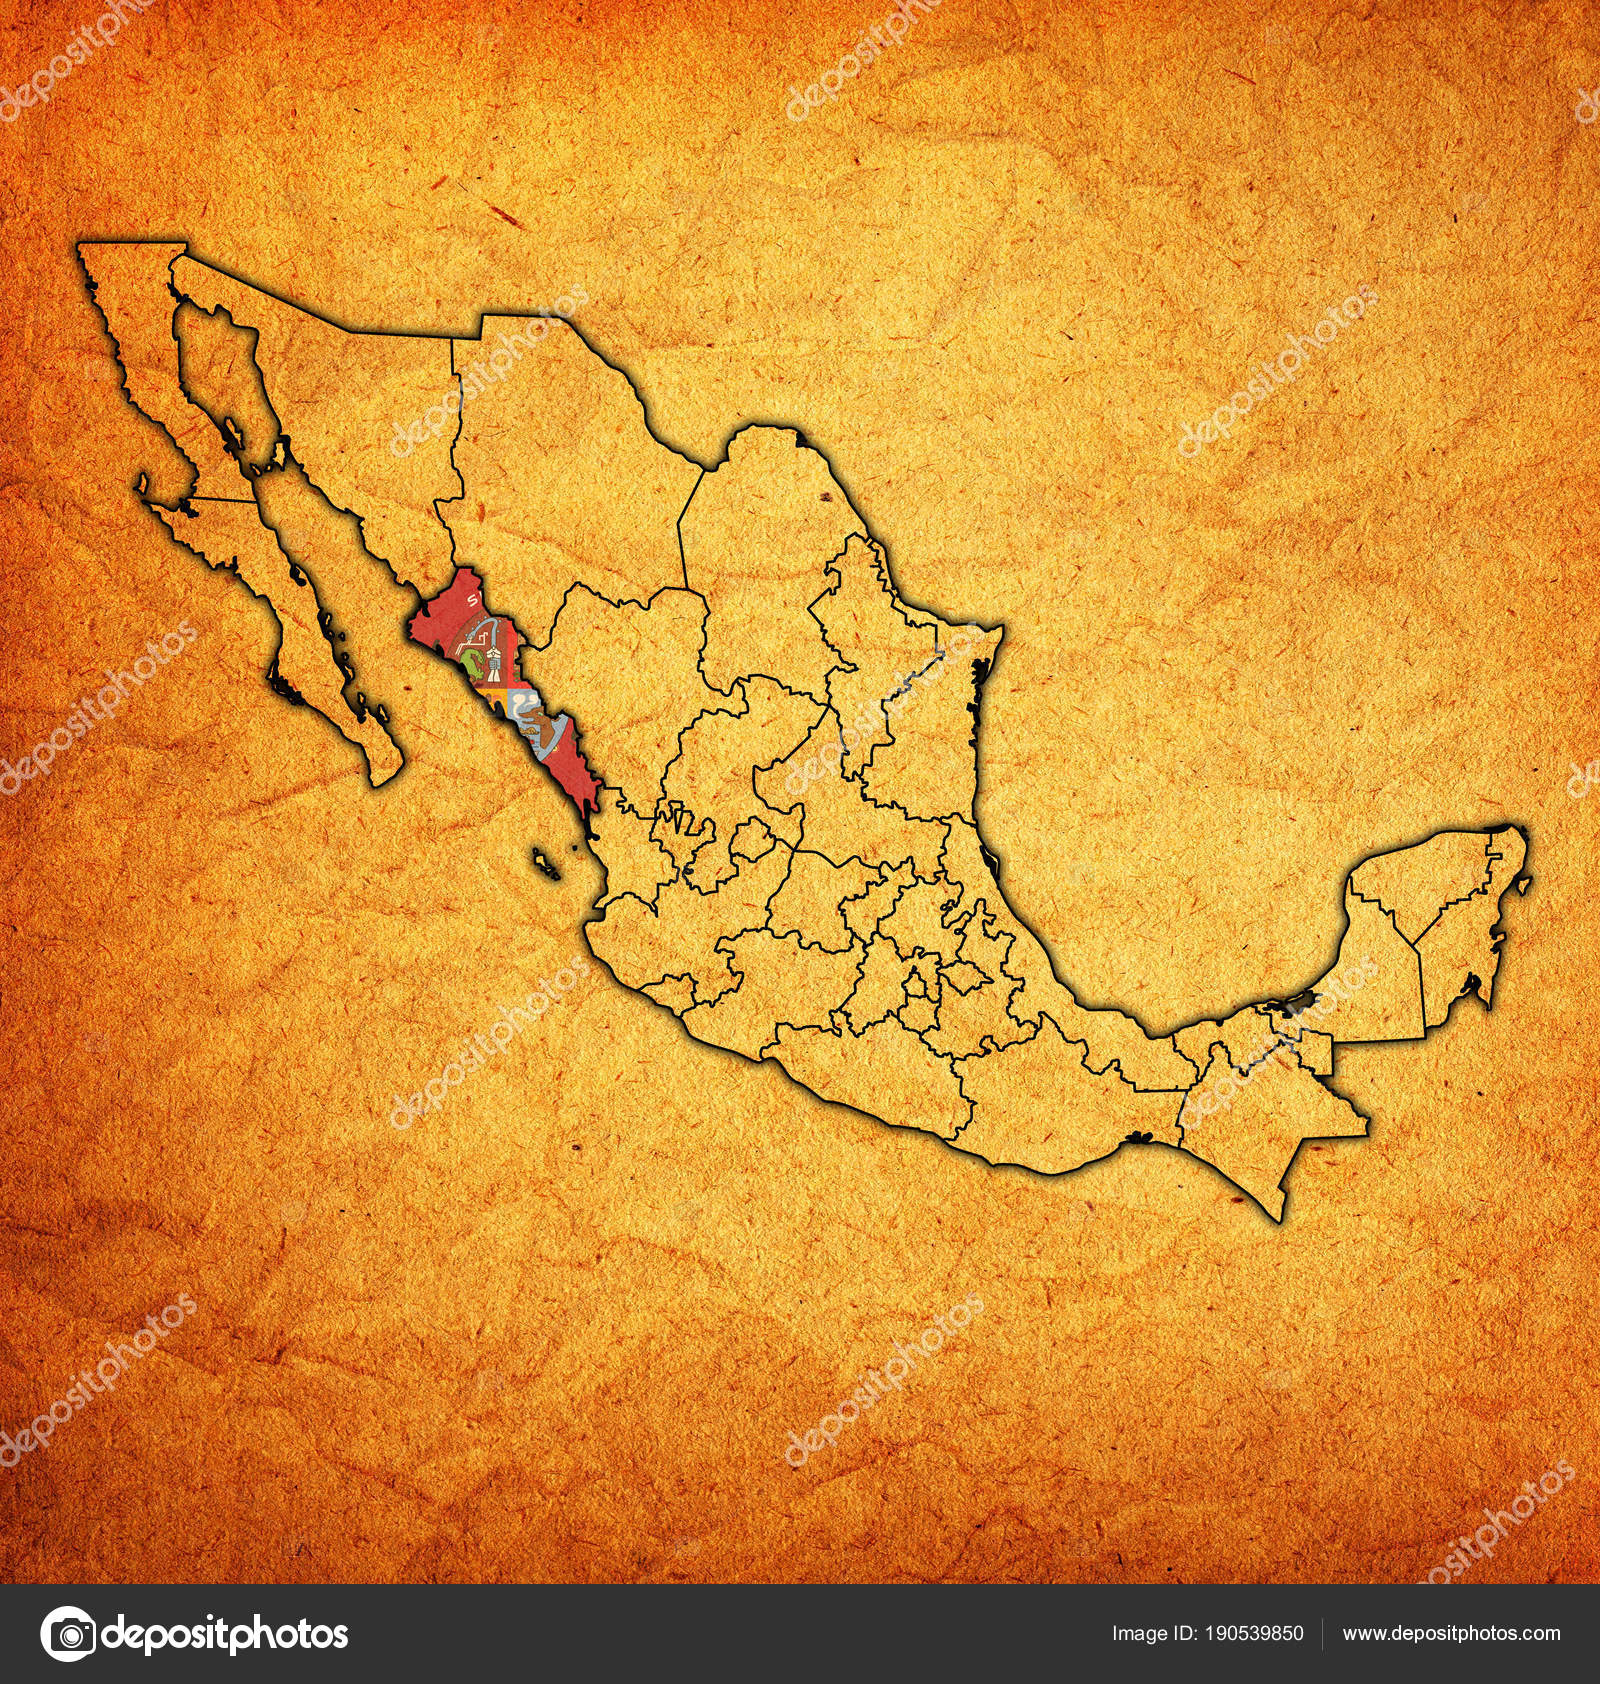 Sinaloa State Map.Sinaloa On Administration Map Of Mexico Stock Photo C Michal812